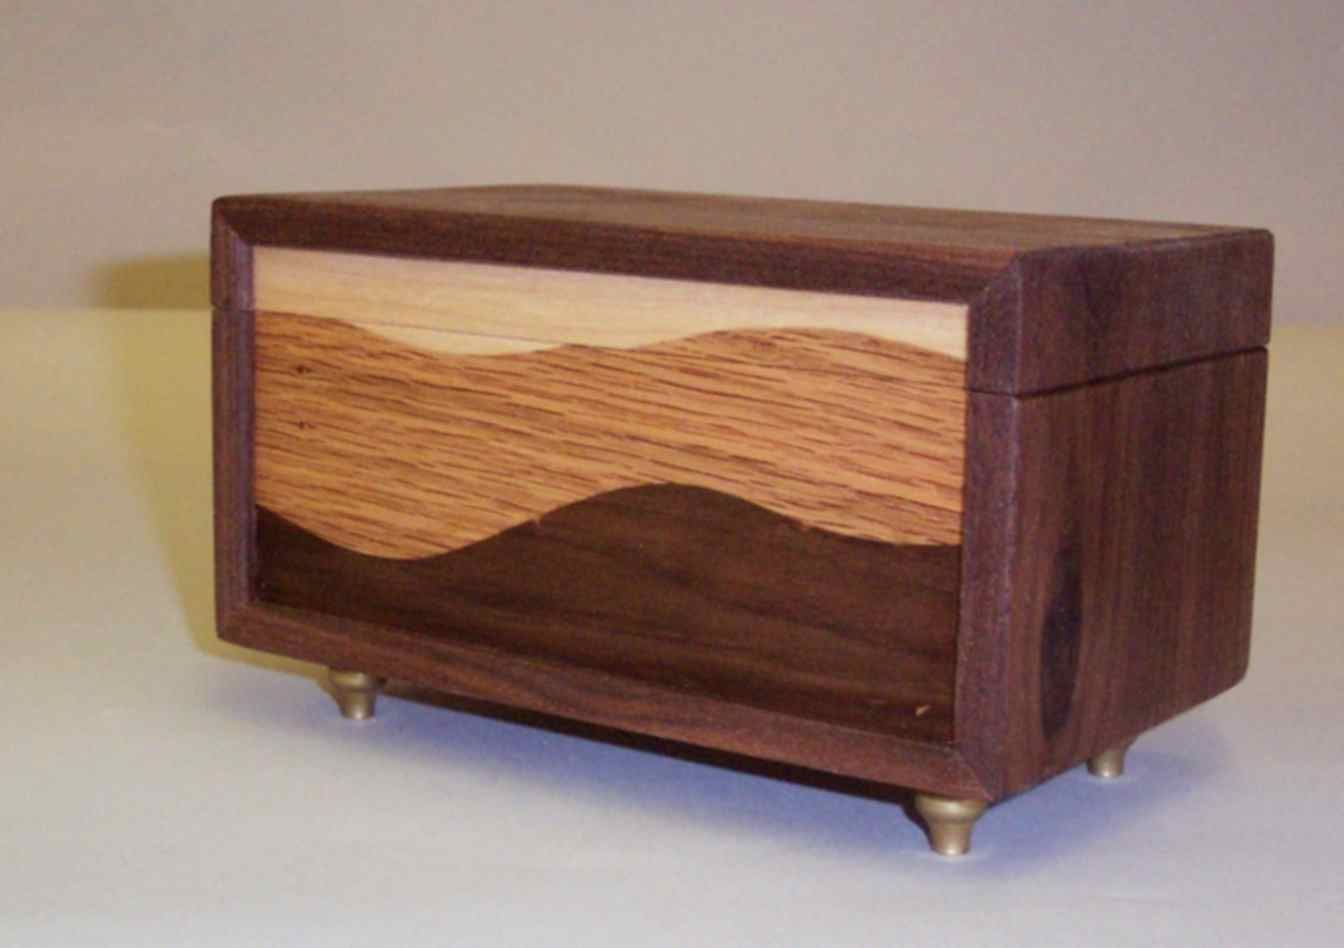 bandsaw jewelry boxes Simple Jewelry Box Designs Things that